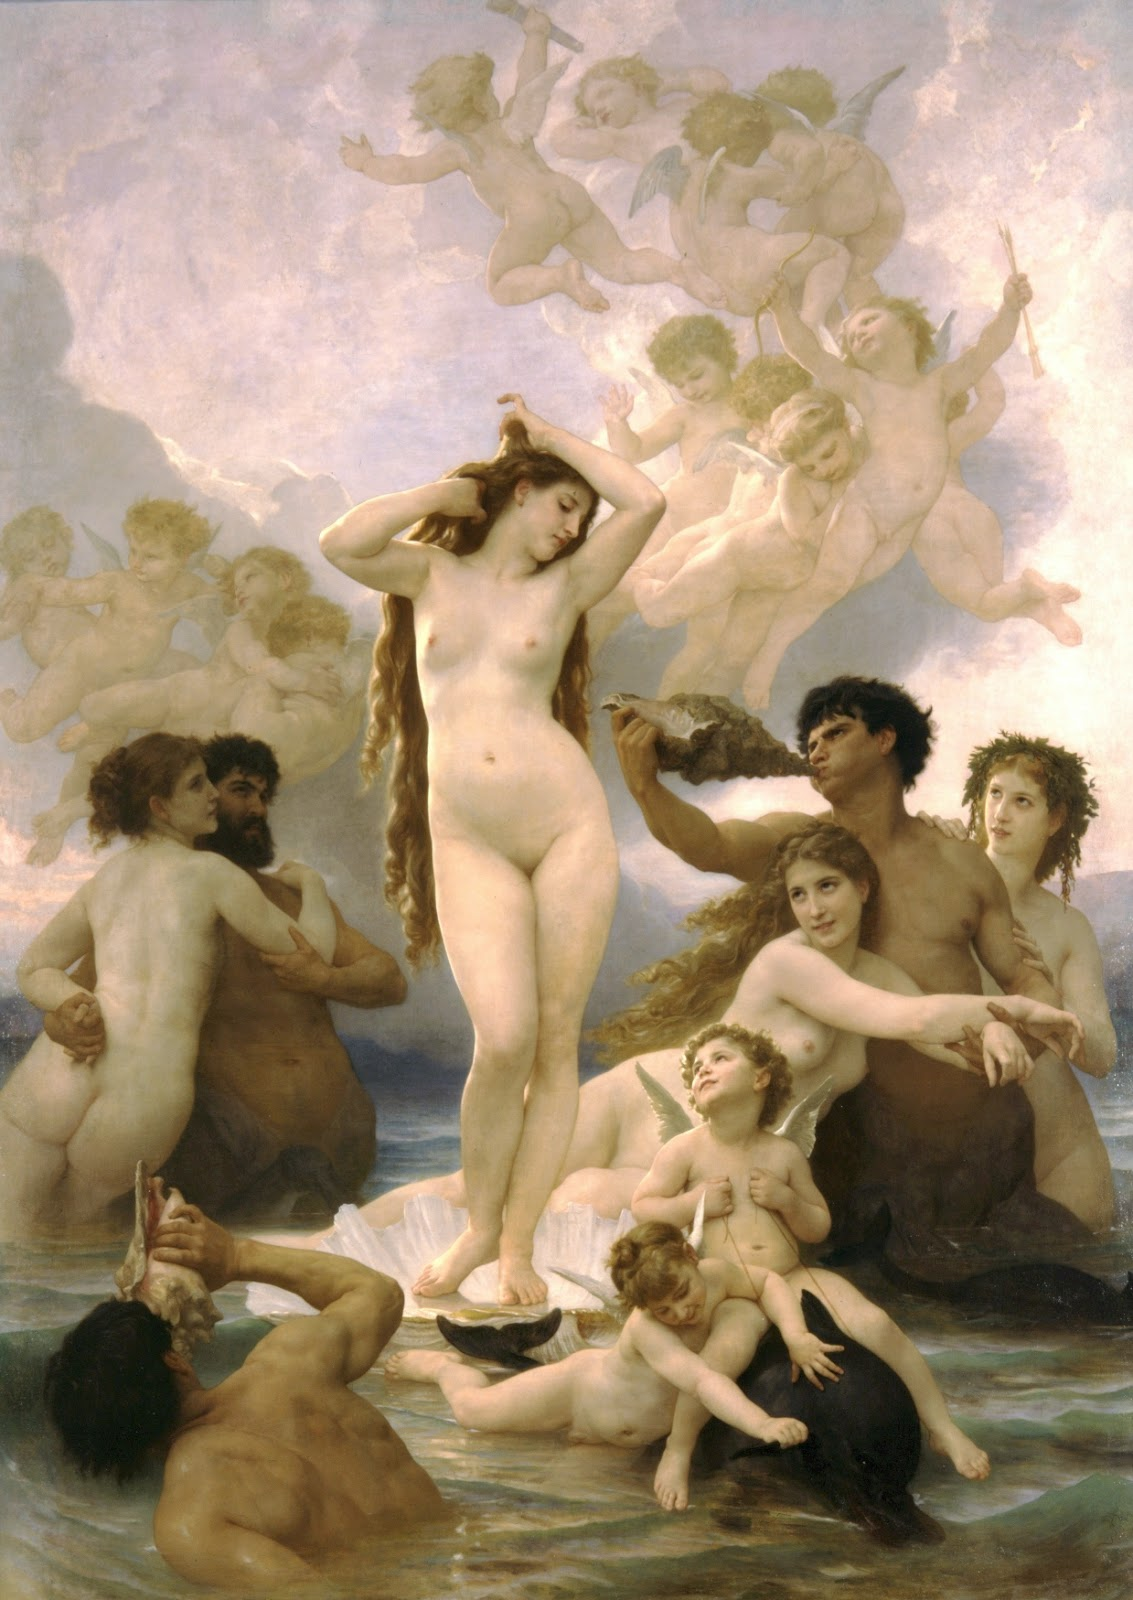 William-Adolphe Bouguereau, La Naissance de Vénus (1879)